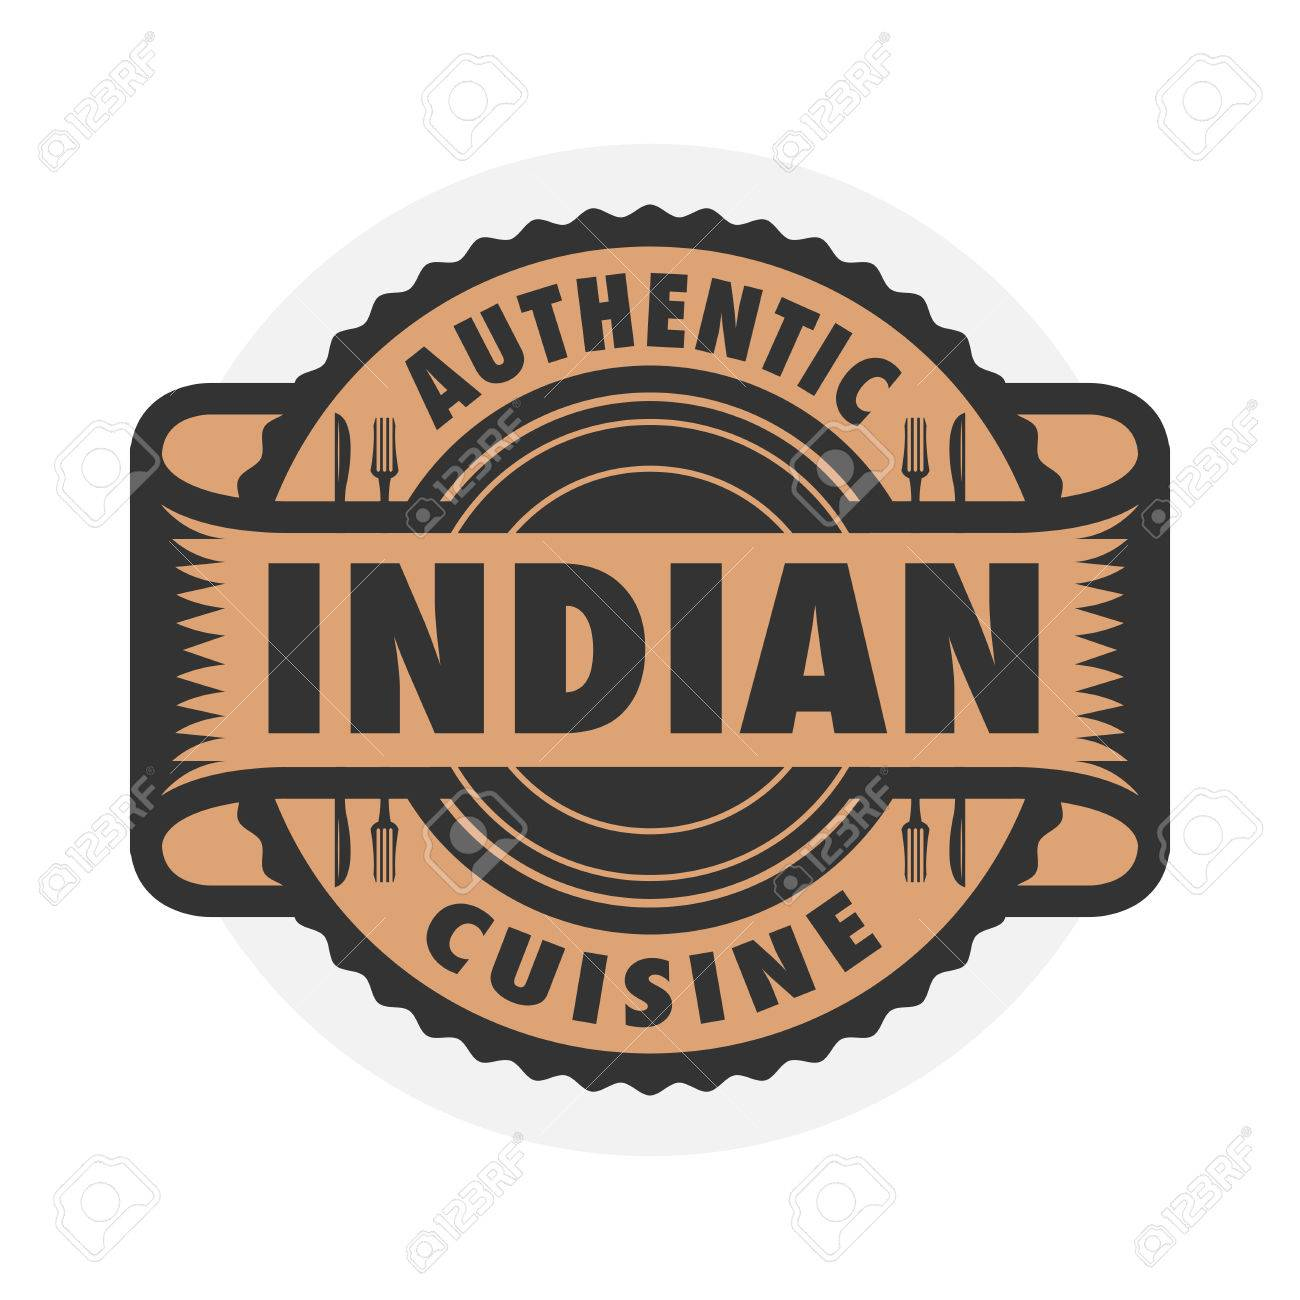 http://previews.123rf.com/images/_fla/_fla1512/_fla151200180/49454341-Abstract-stamp-or-label-with-the-text-Authentic-Indian-Cuisine-written-inside-illustration-Stock-Vector.jpg